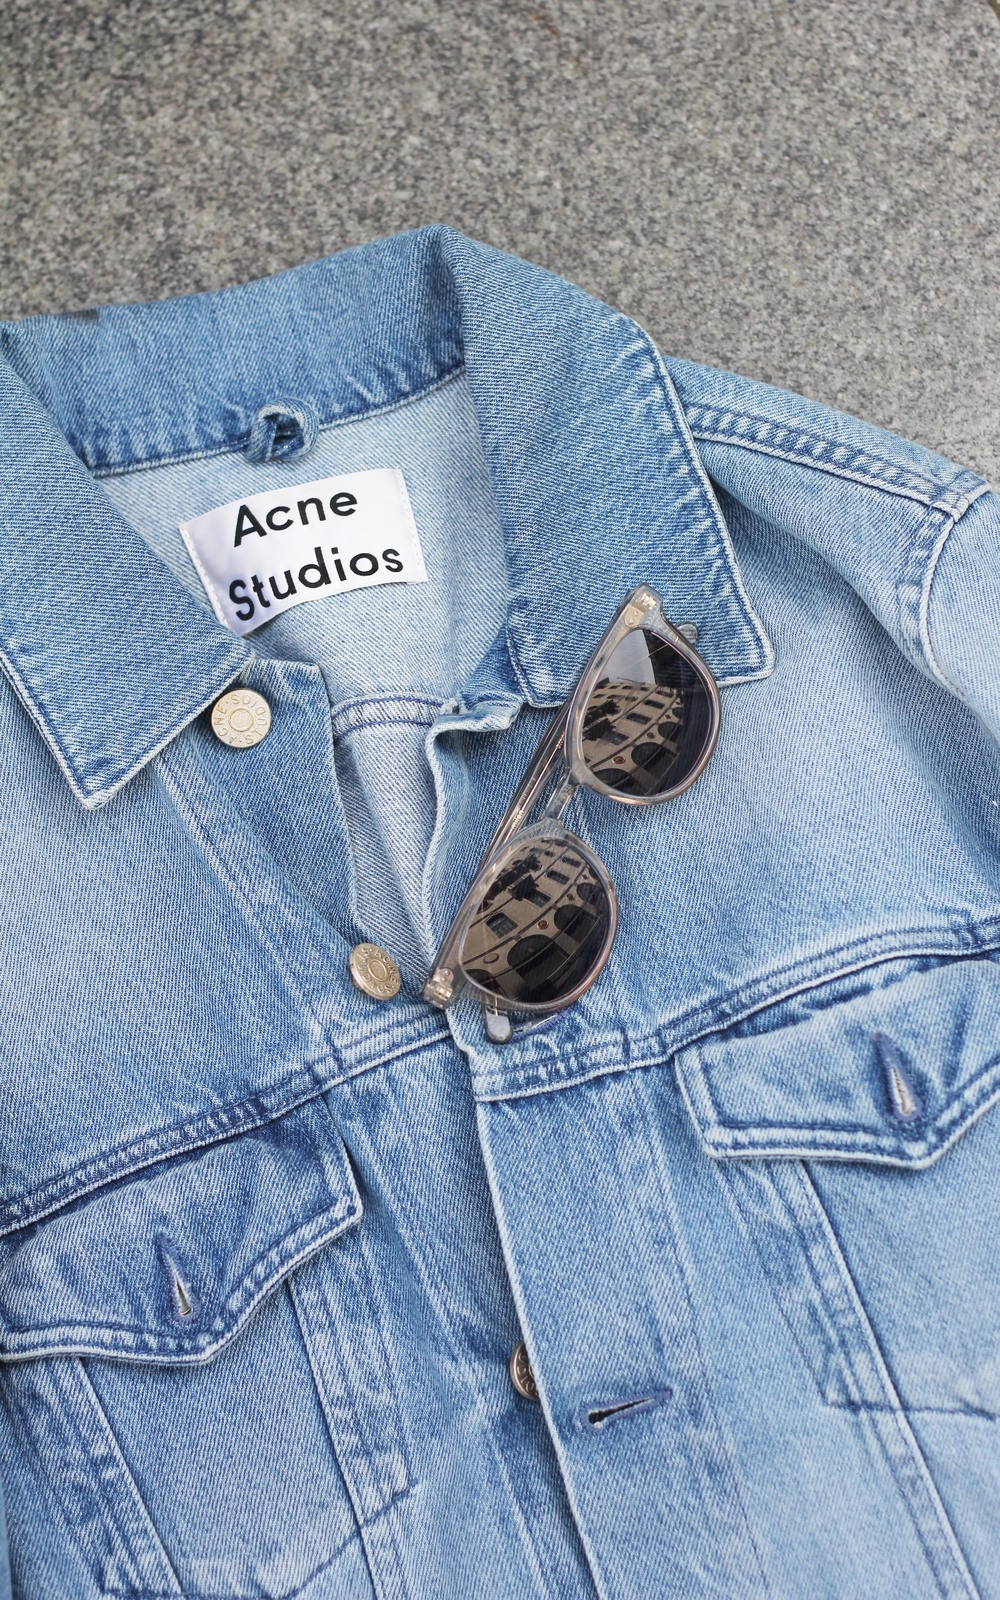 acne_studios_denim